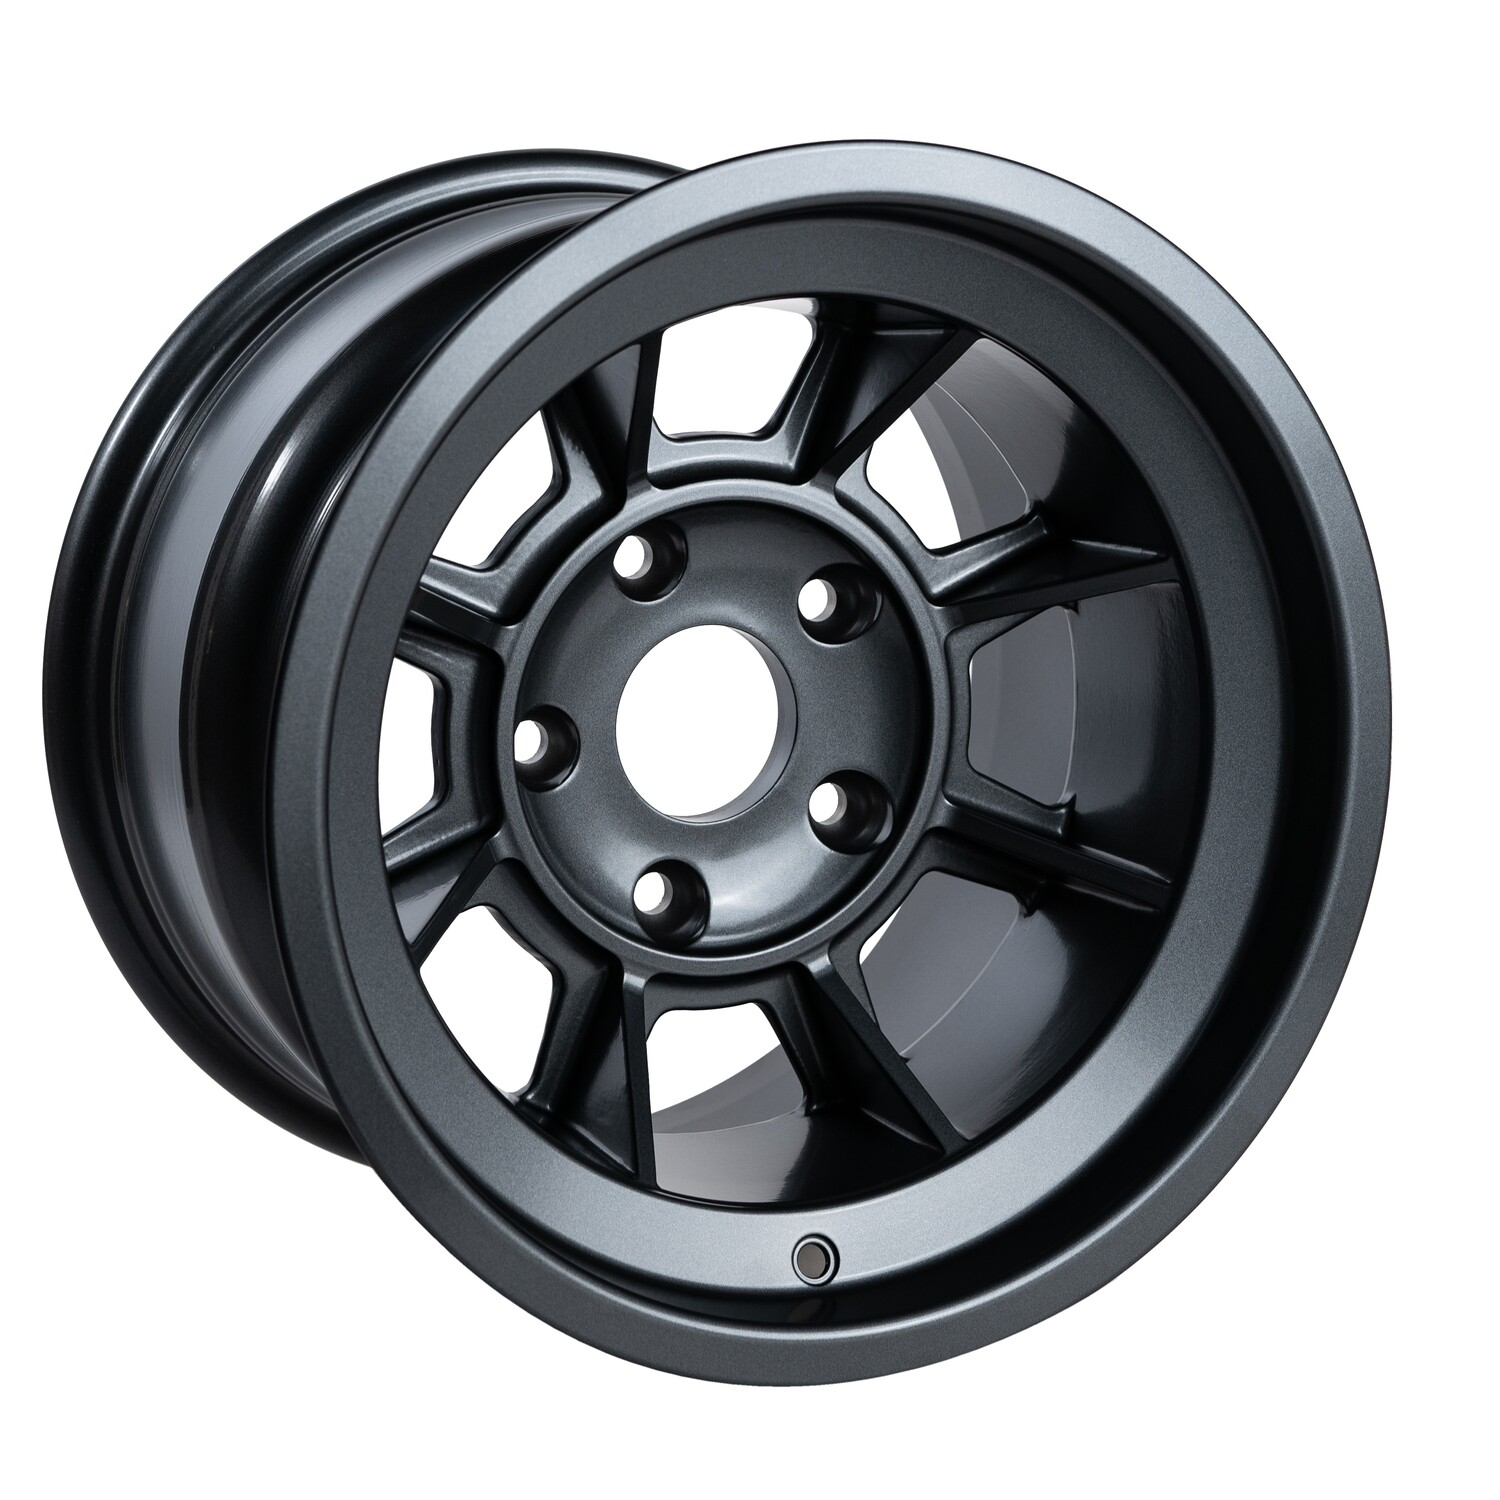 PAG1510P Satin Anthracite 15 x 10